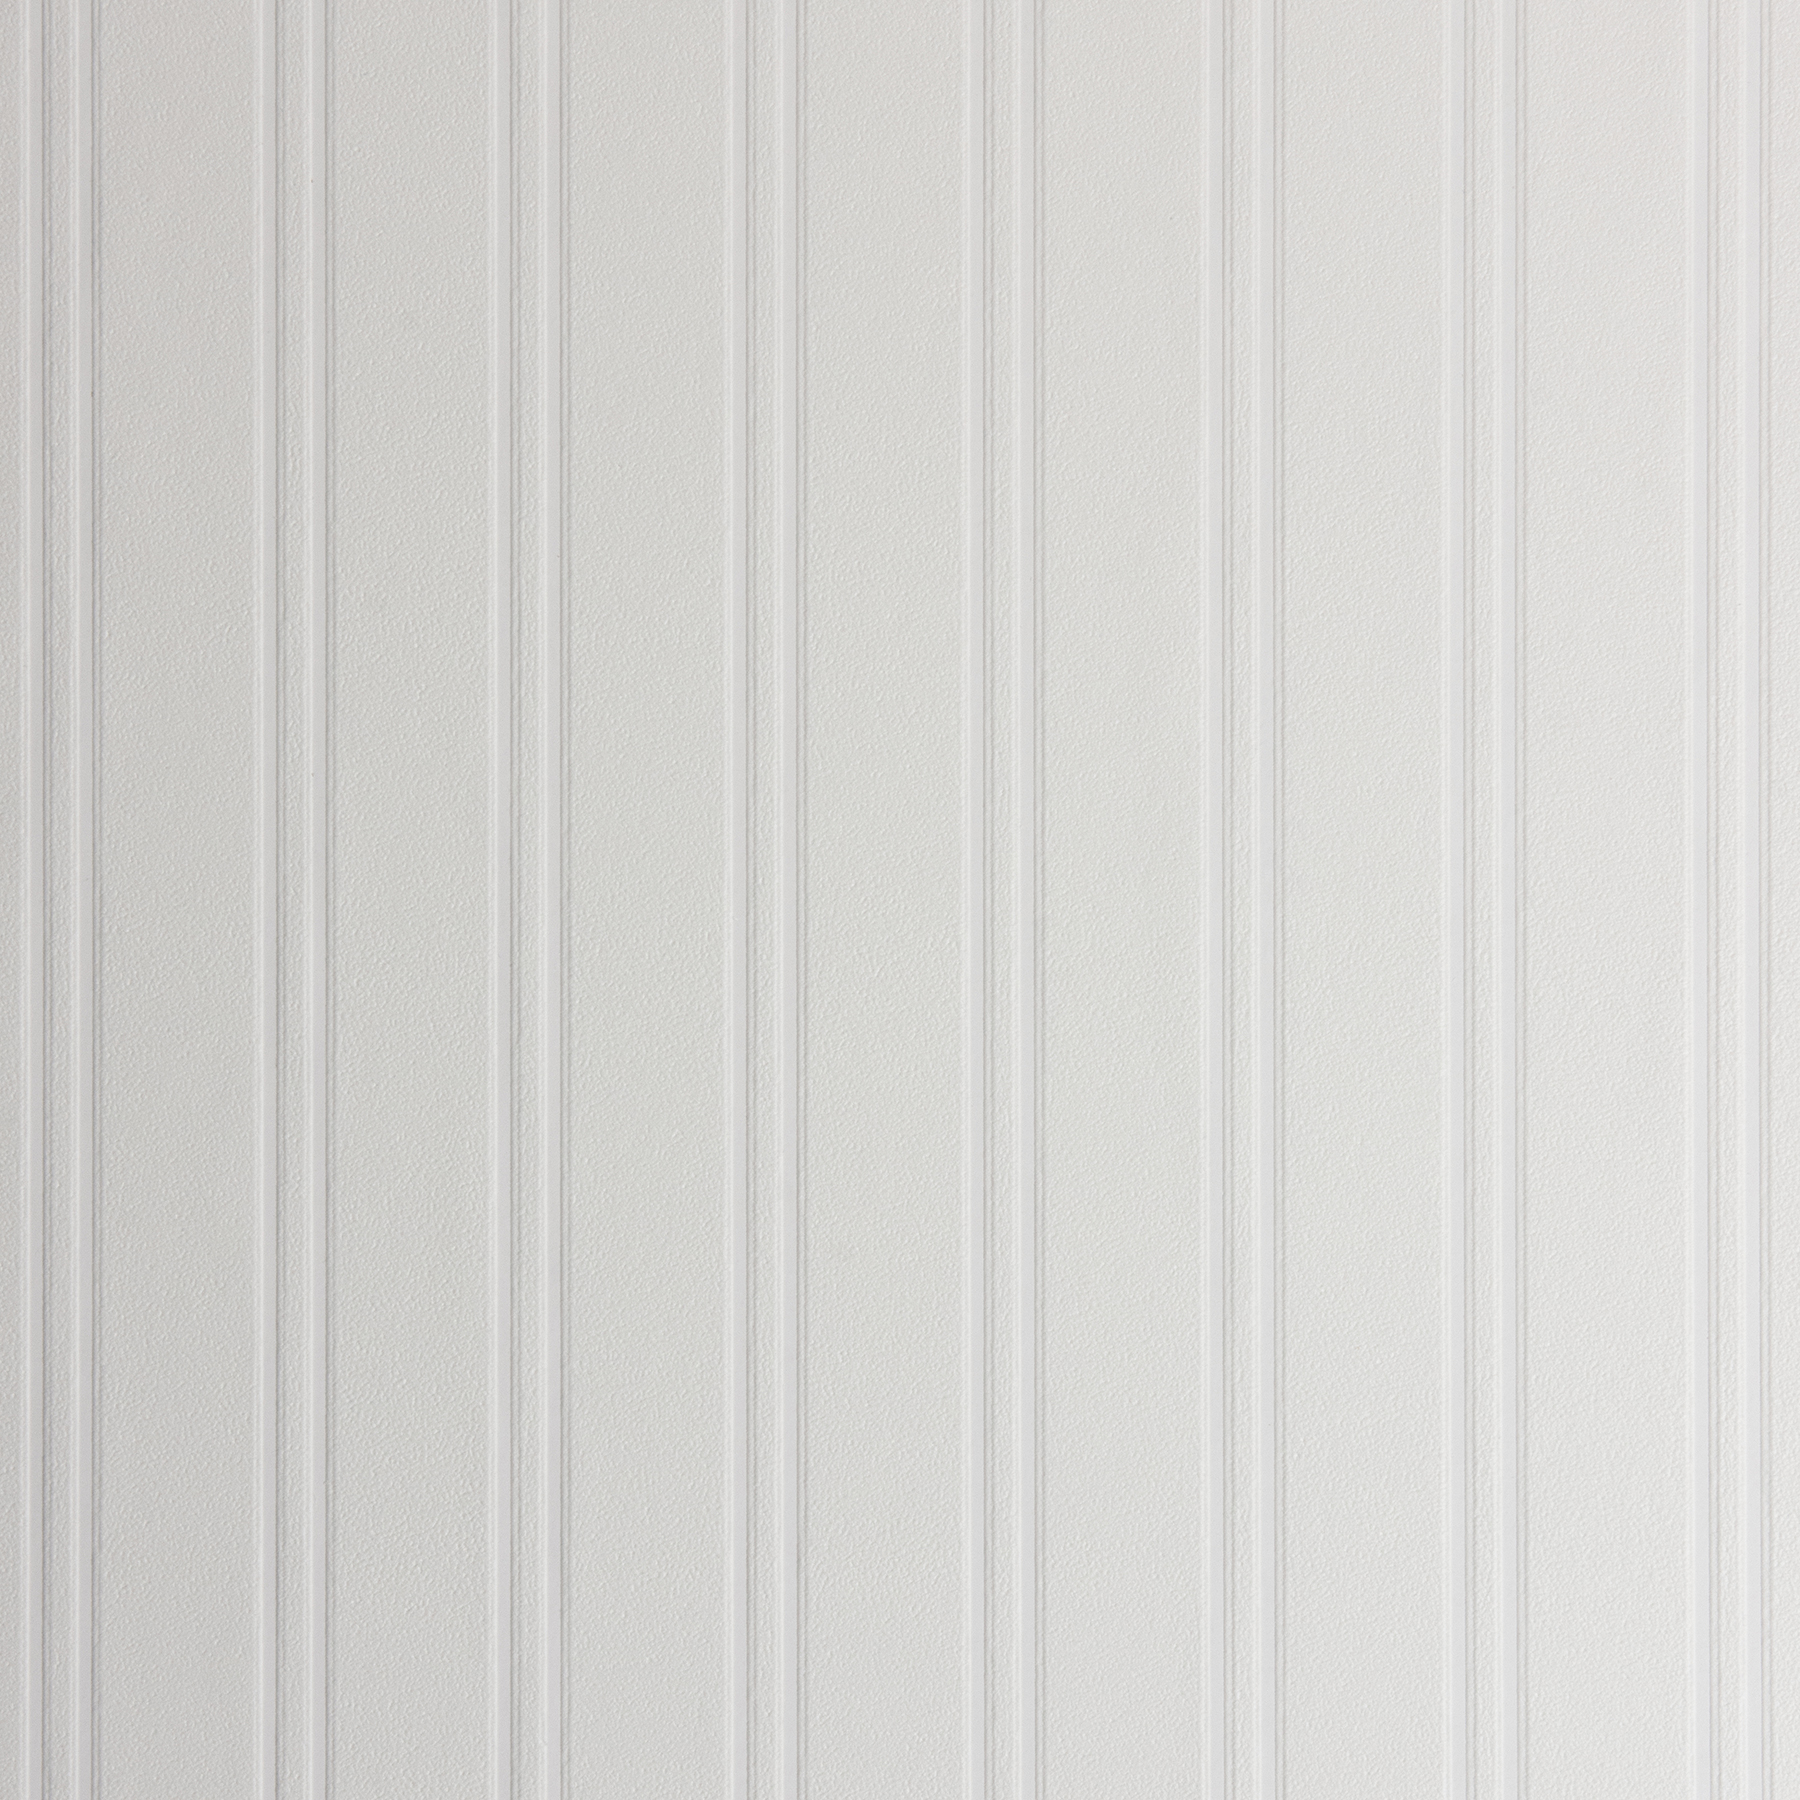 Picture of Beadboard Wood Panel Paintable Wallpaper